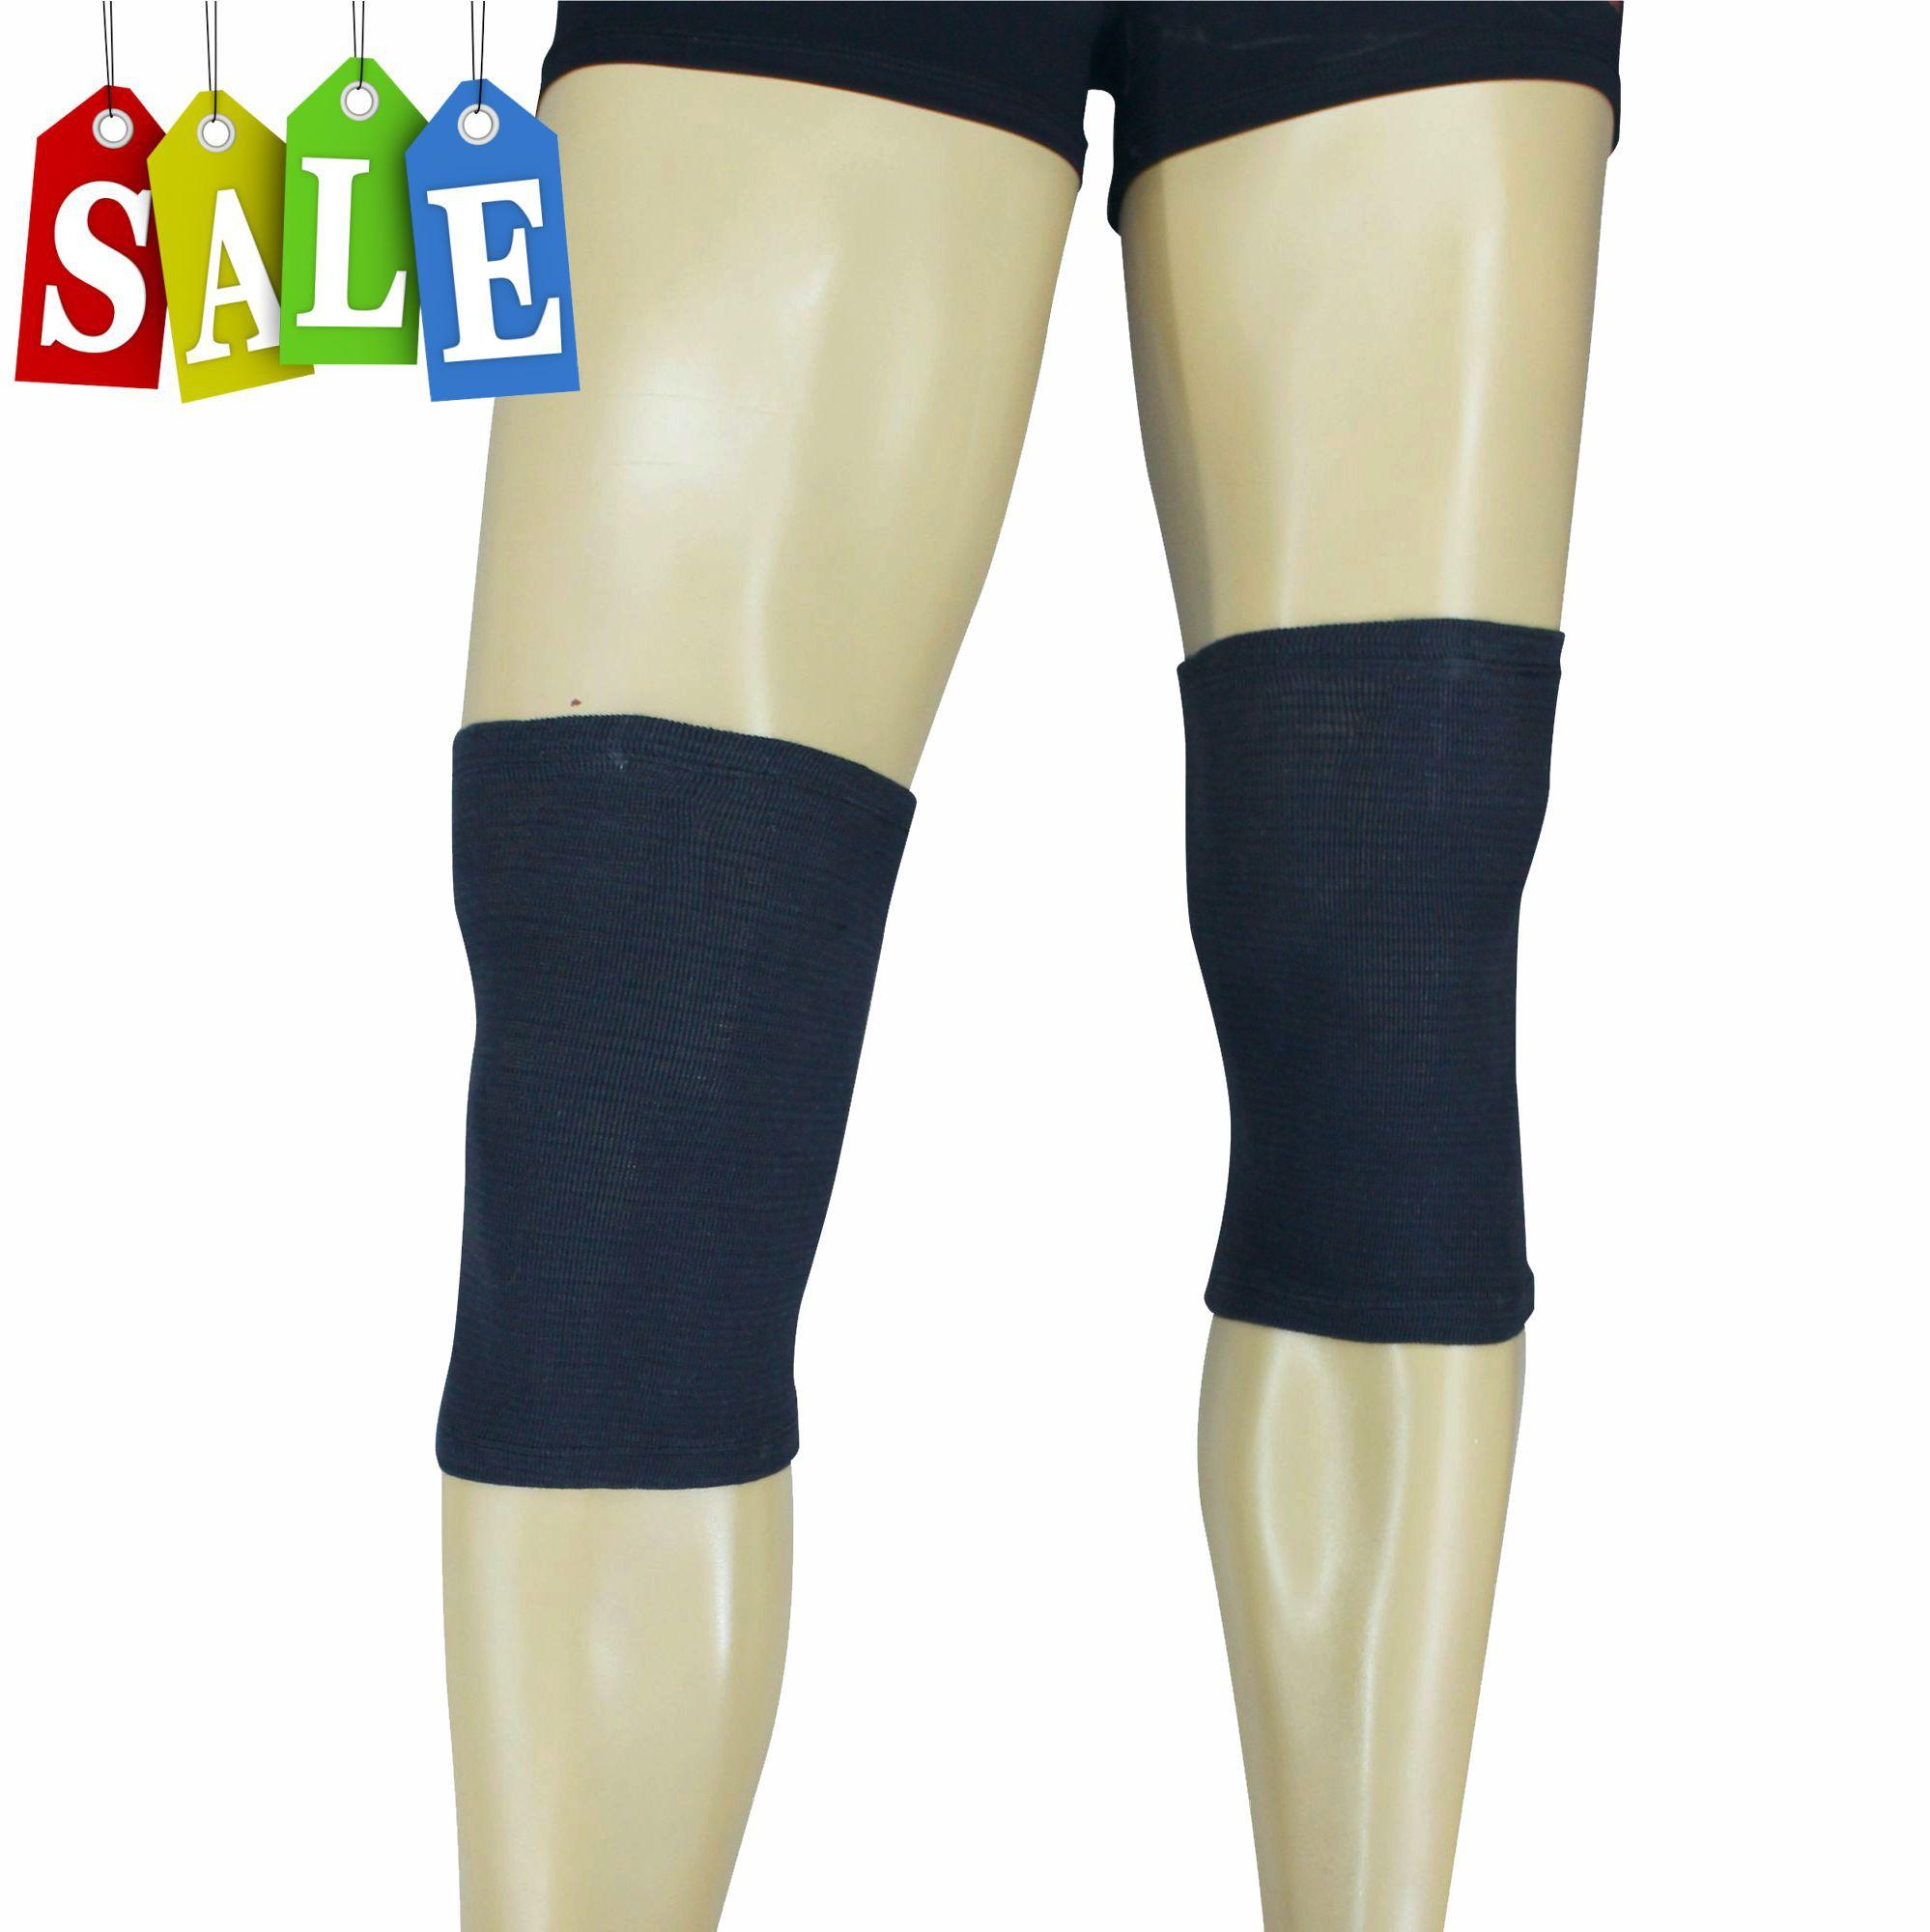 135961261d Product details of PROCARE COMBAT #CSX07 Knee Sleeves Seamless Elastic  2-Way PAIR (2 pcs)